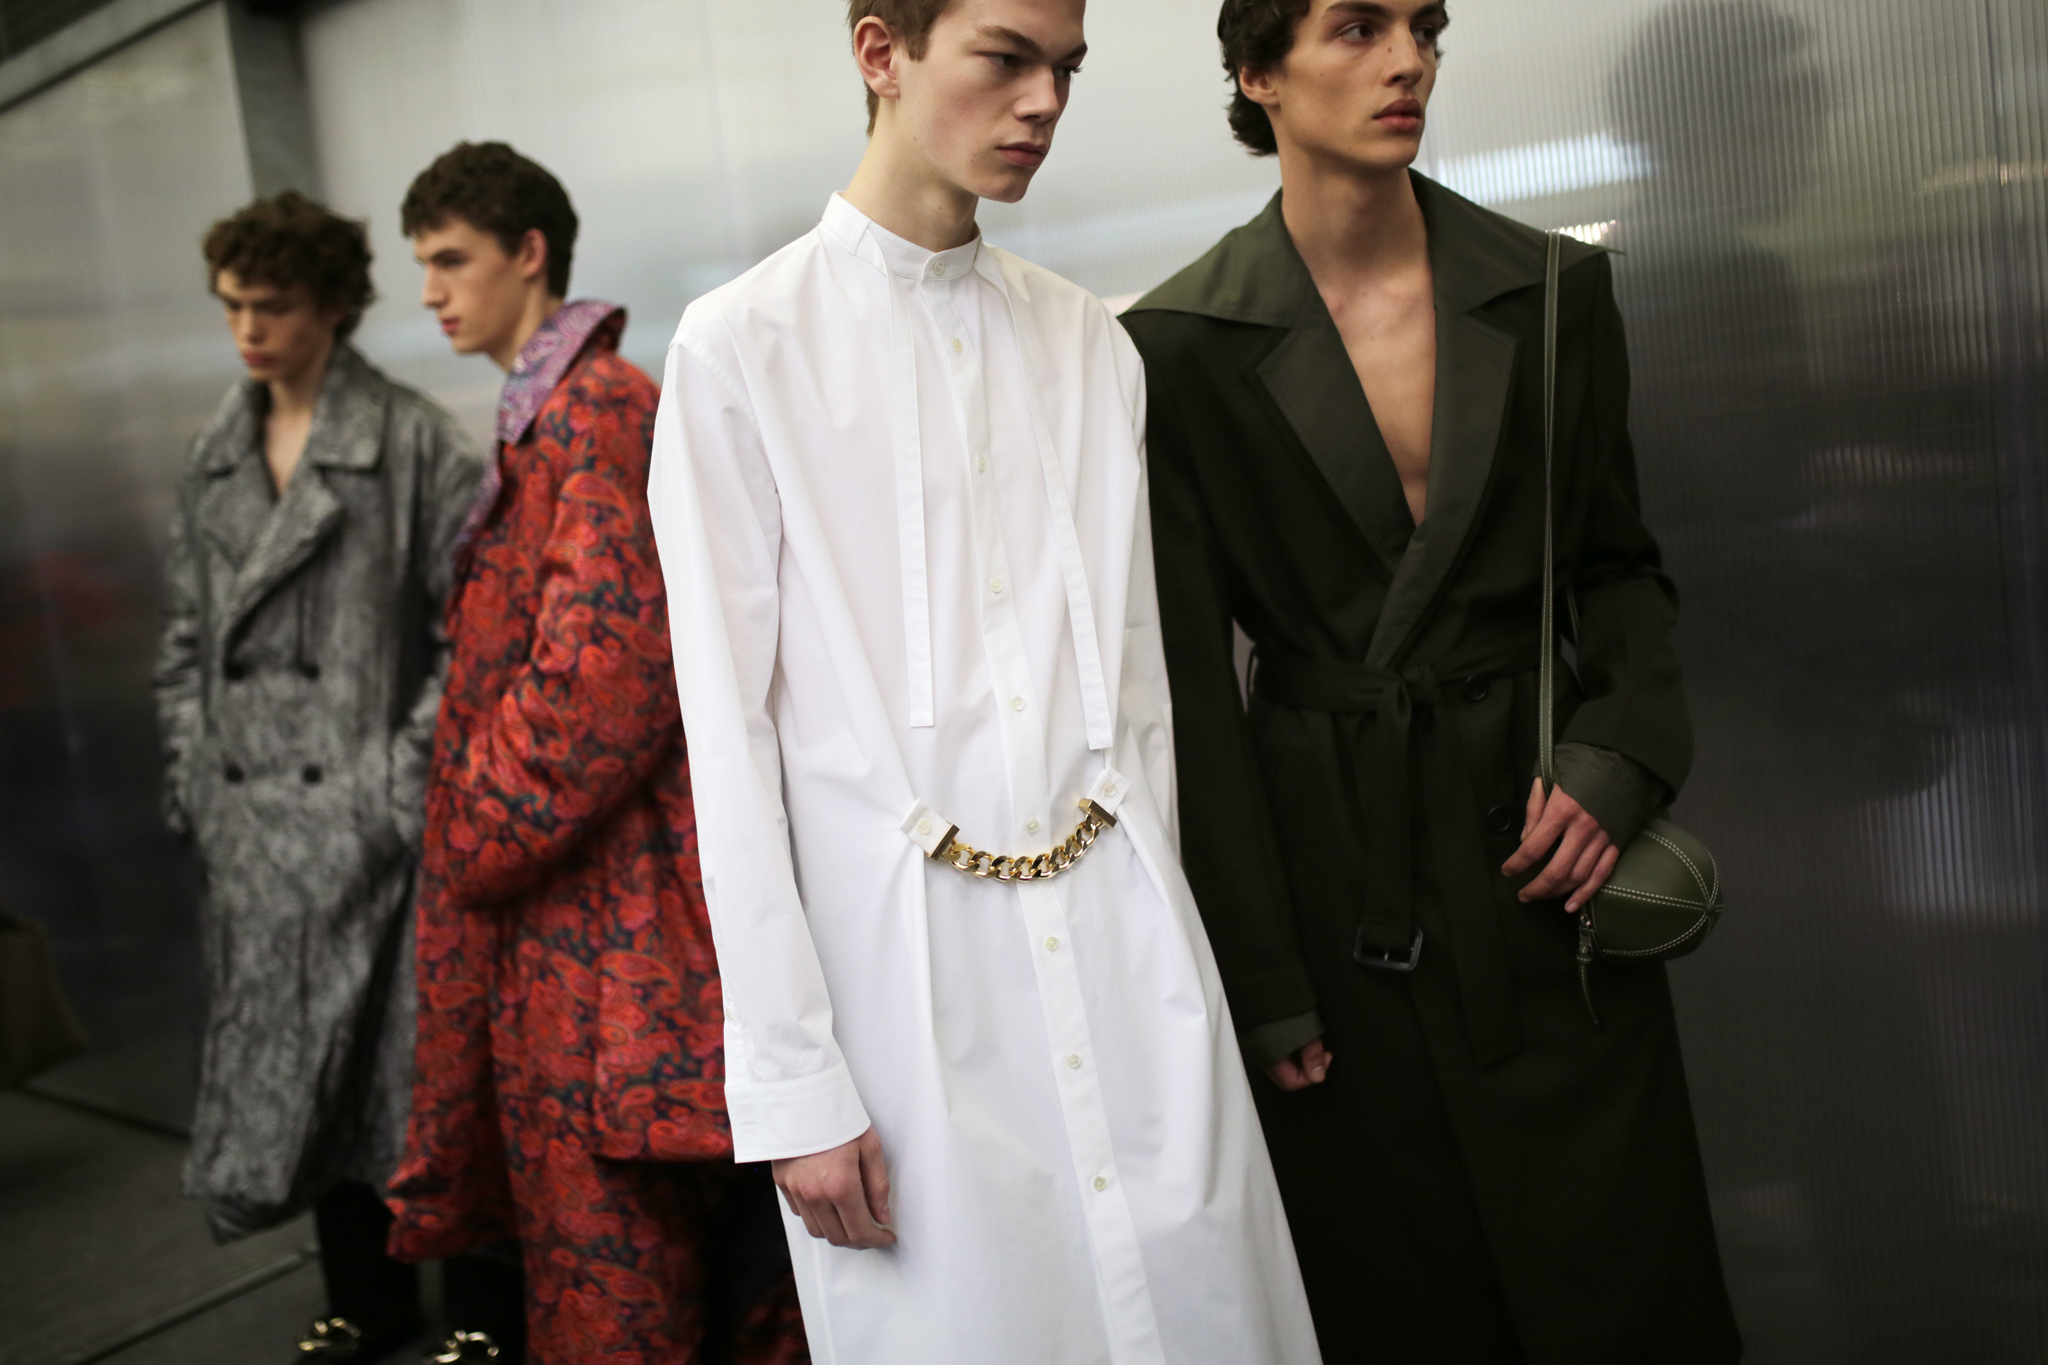 Backstage at JW Anderson Men's Fall 2020